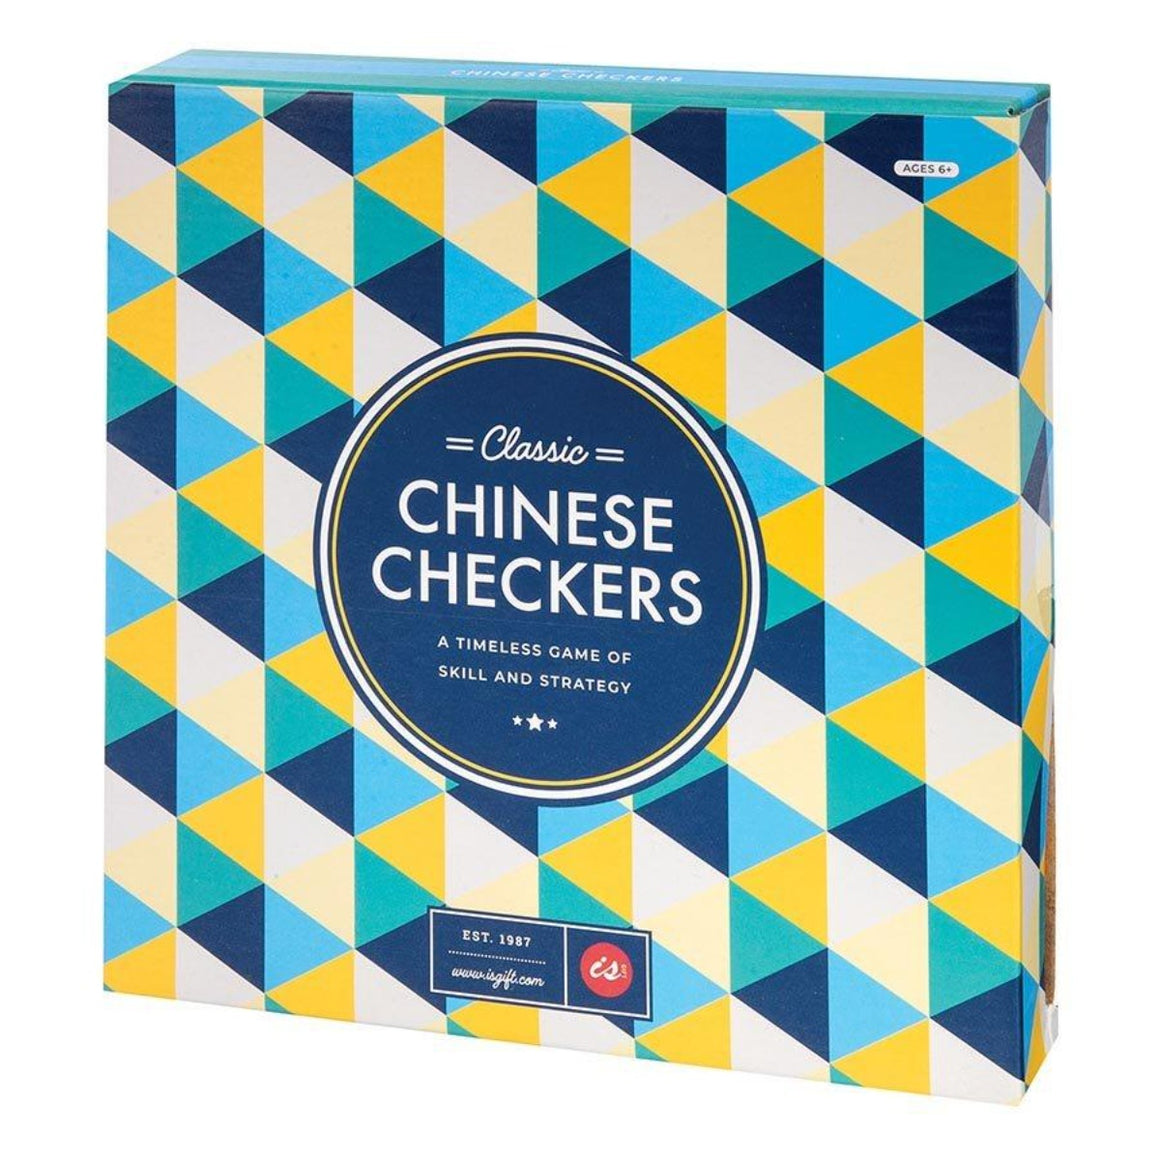 Image featuring the packaging for the Chinese Checkers game which features the colours blue, navy, teal green, yellow and white all in a triangle pattern - which also includes the words Classic Chinese Checkers - a timeless game of skill and strategy